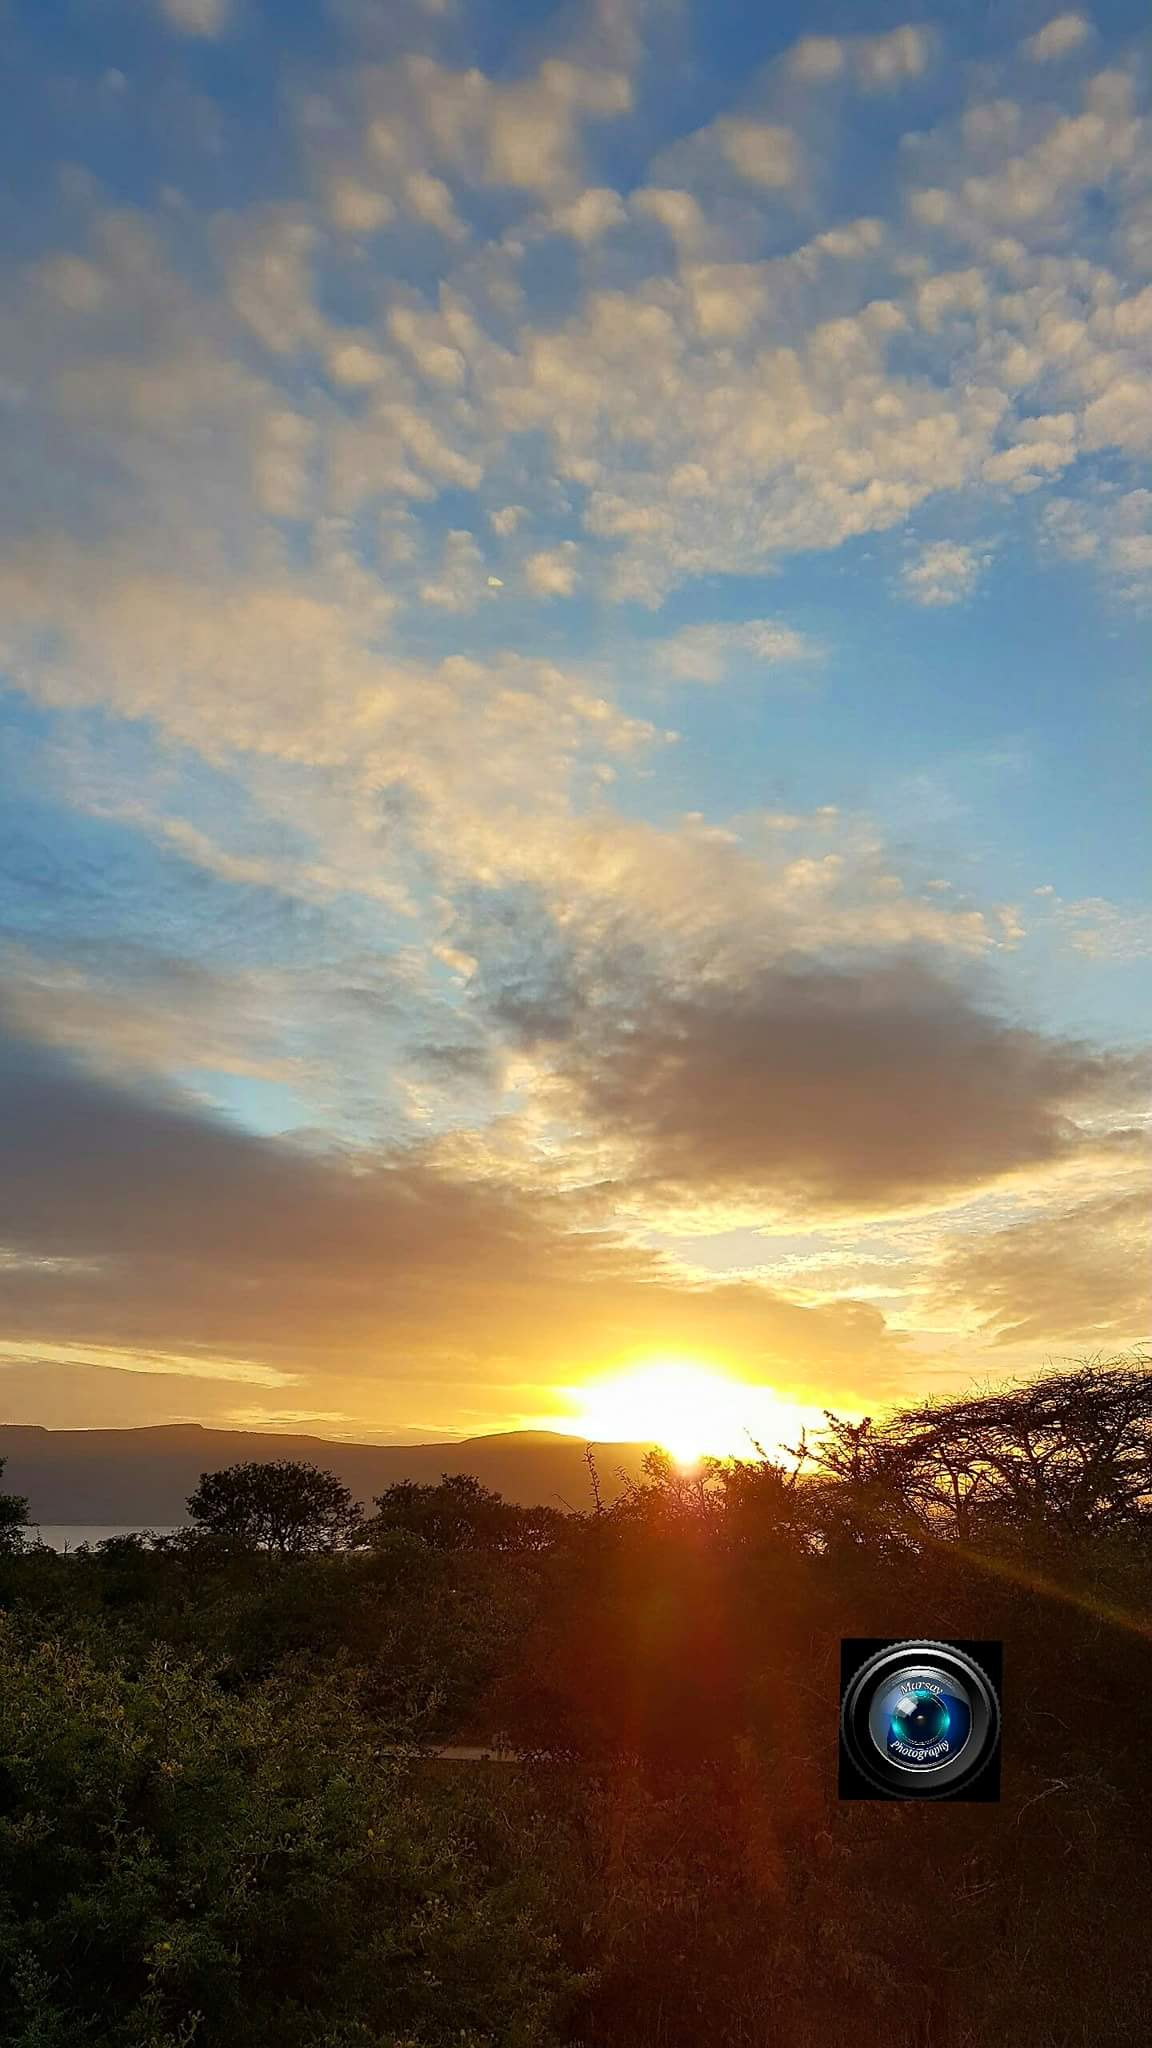 Sunrise in Pongola Nature Reserve, Kwa-Zulu Natal, December 2016.